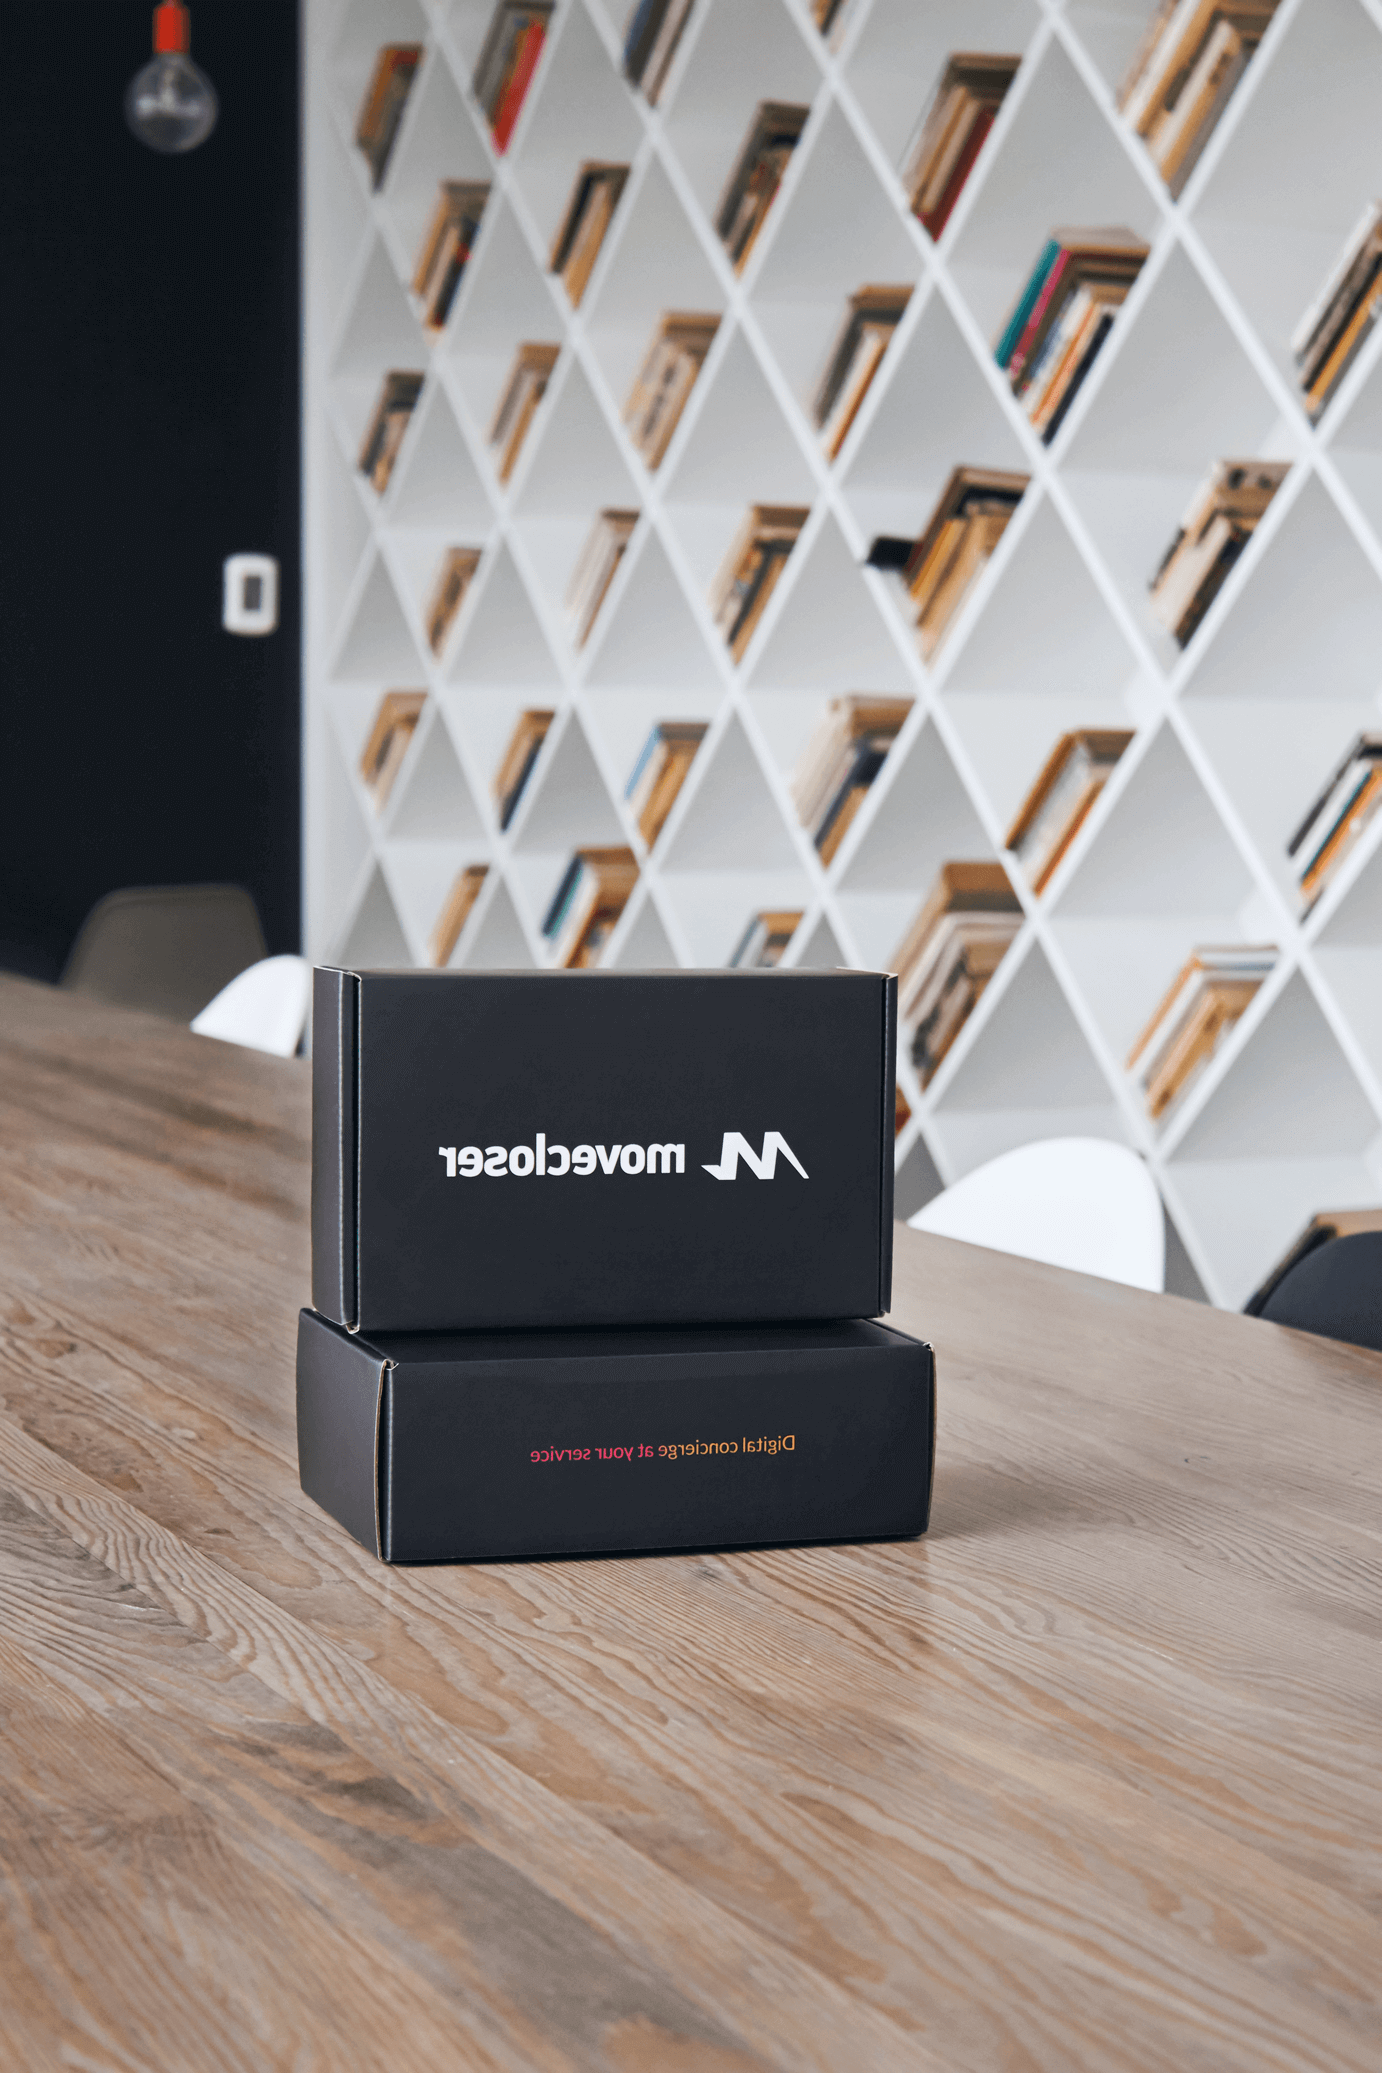 onboarding boxes